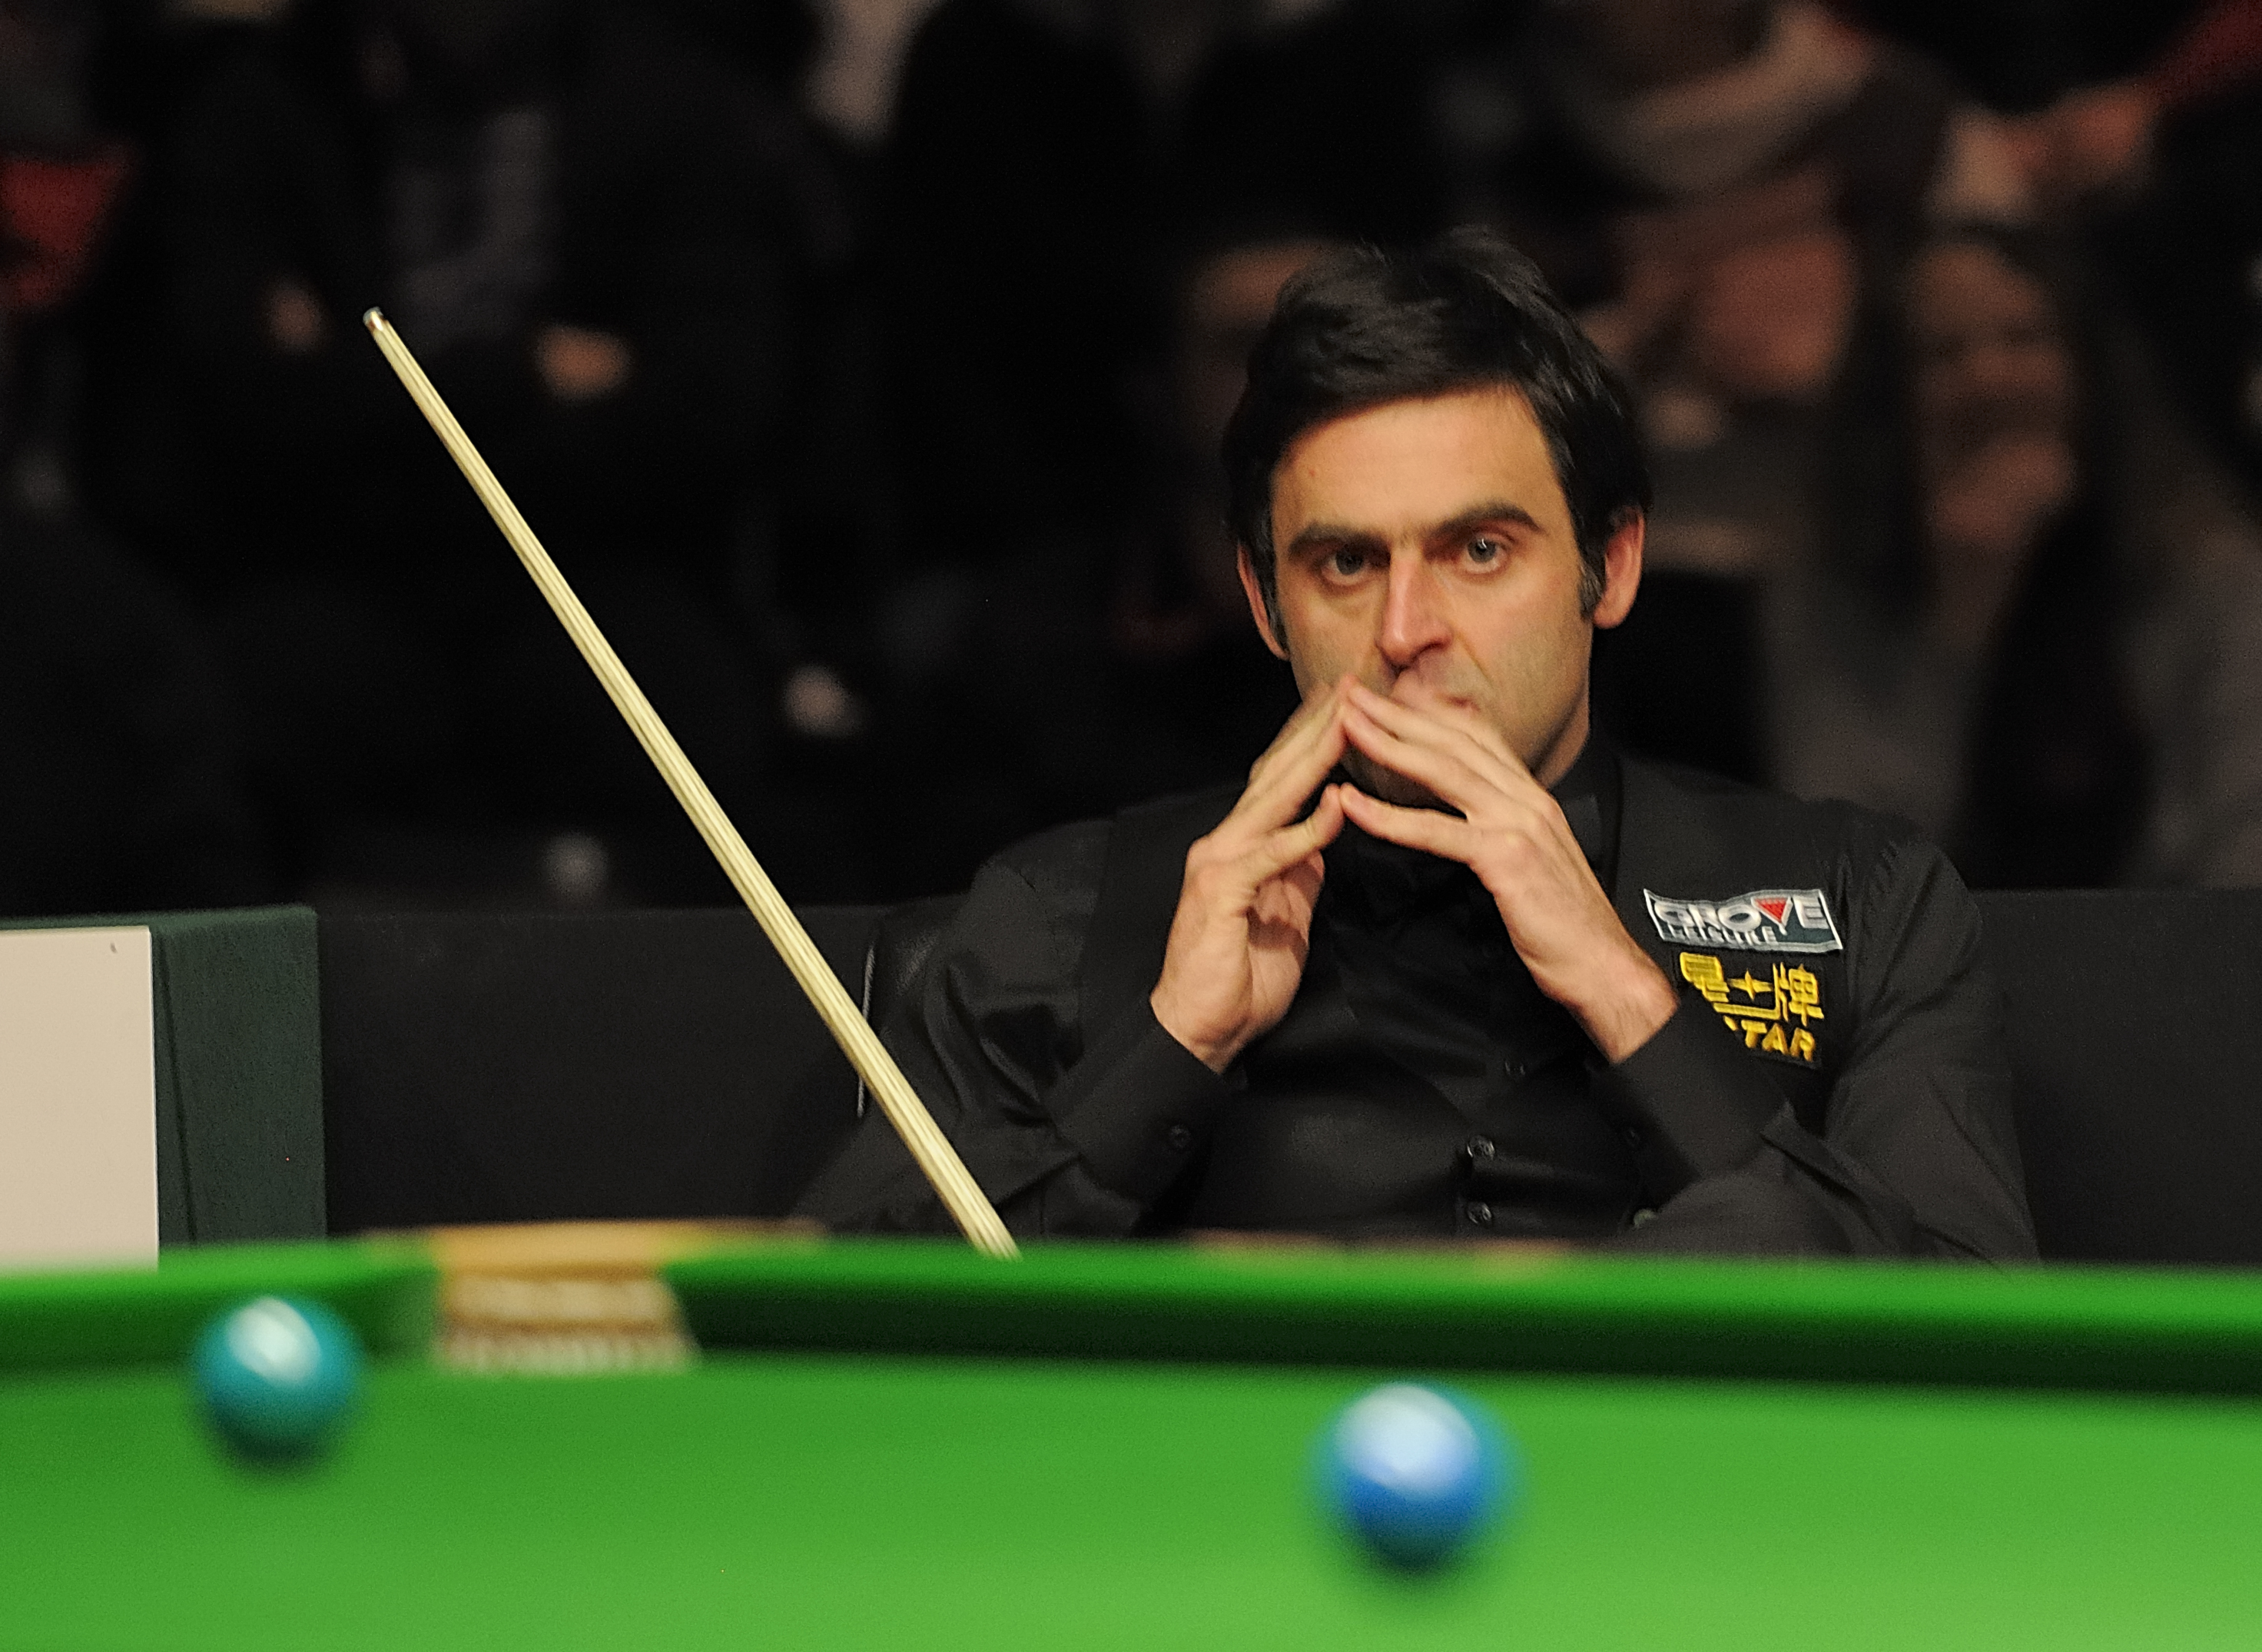 ronnie o sullivan snooker